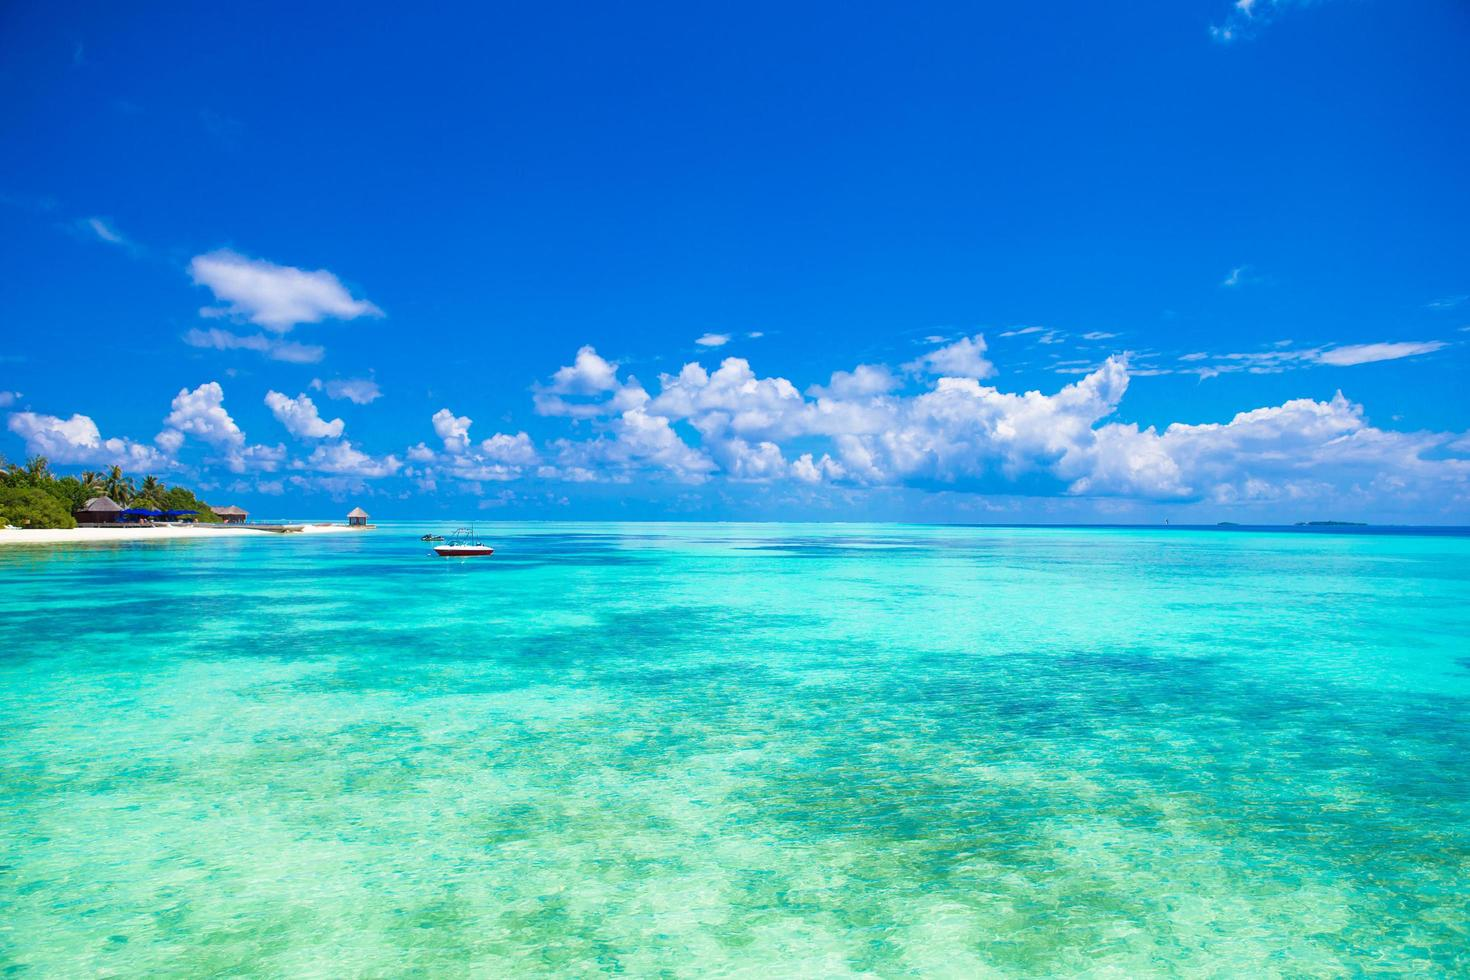 Maldives, South Asia, 2020 - Idyllic turquoise water with a resort in the distance photo